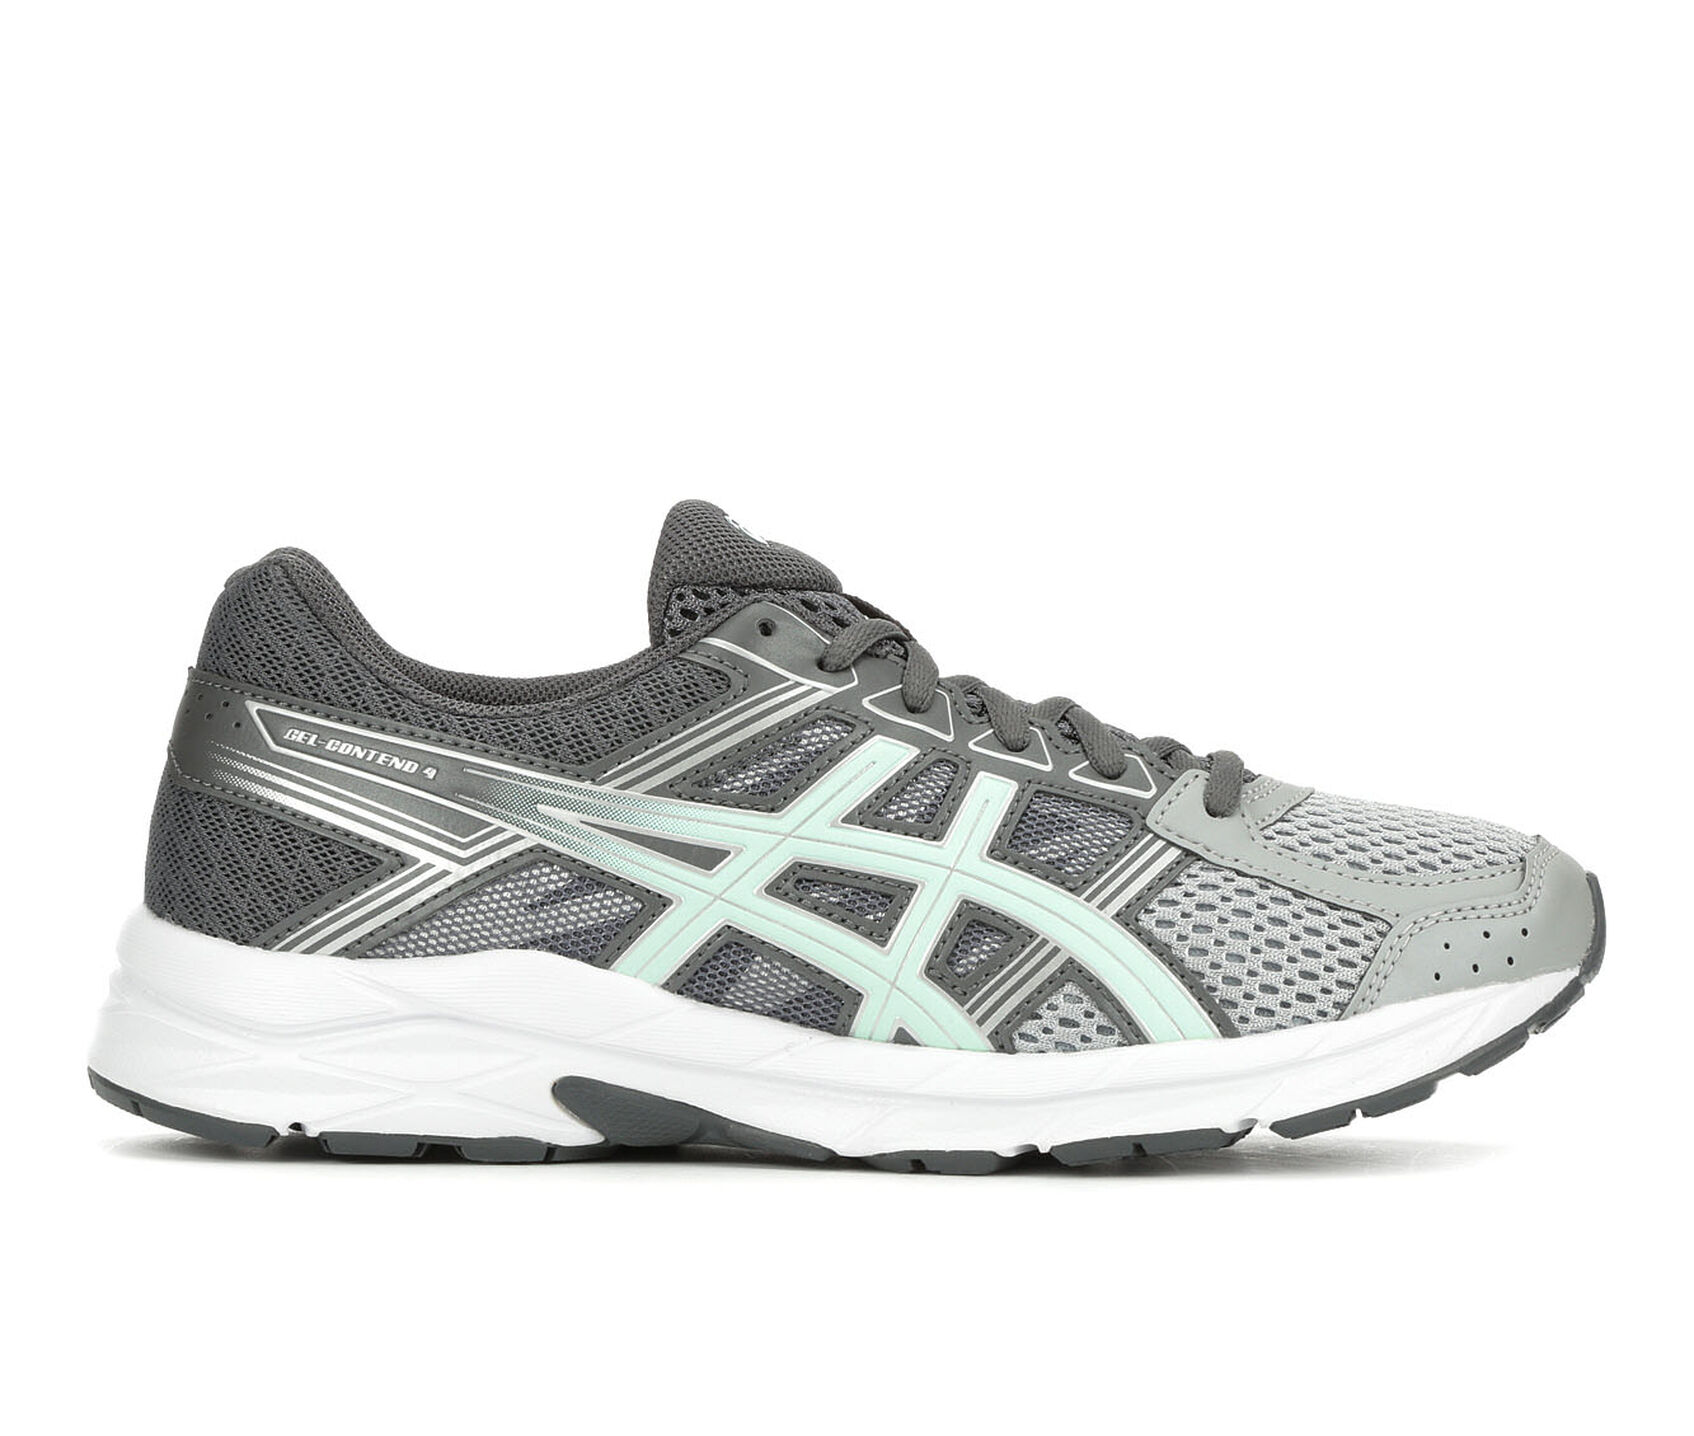 df209dcd46 Women's ASICS Gel Contend 4 Running Shoes